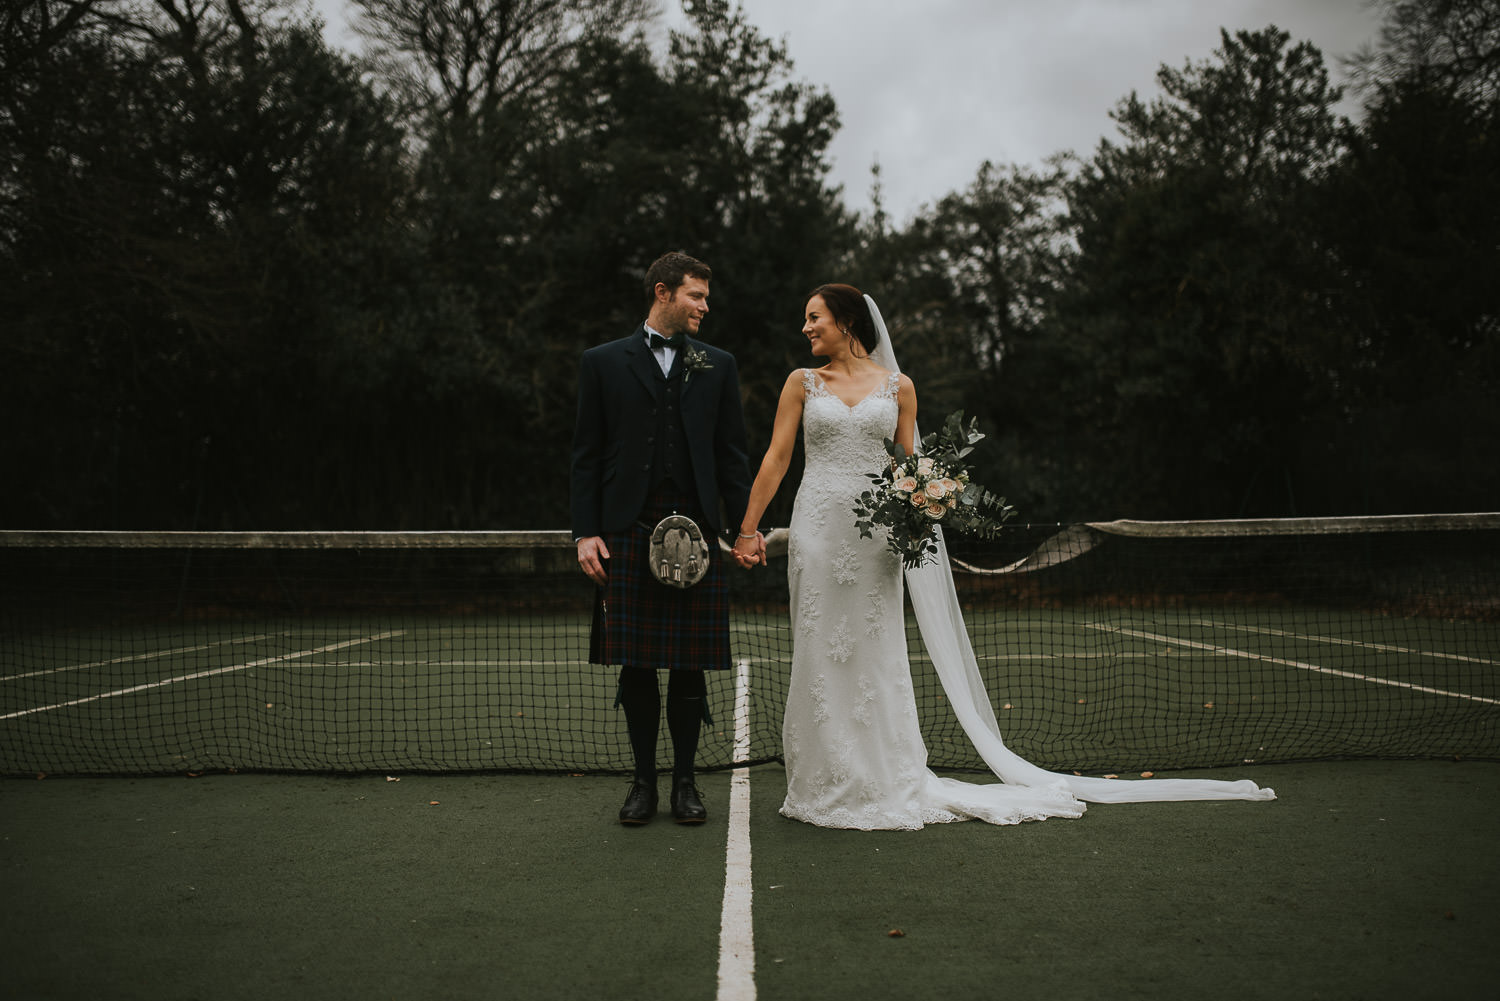 Bride and groom on the tennis court holding hands